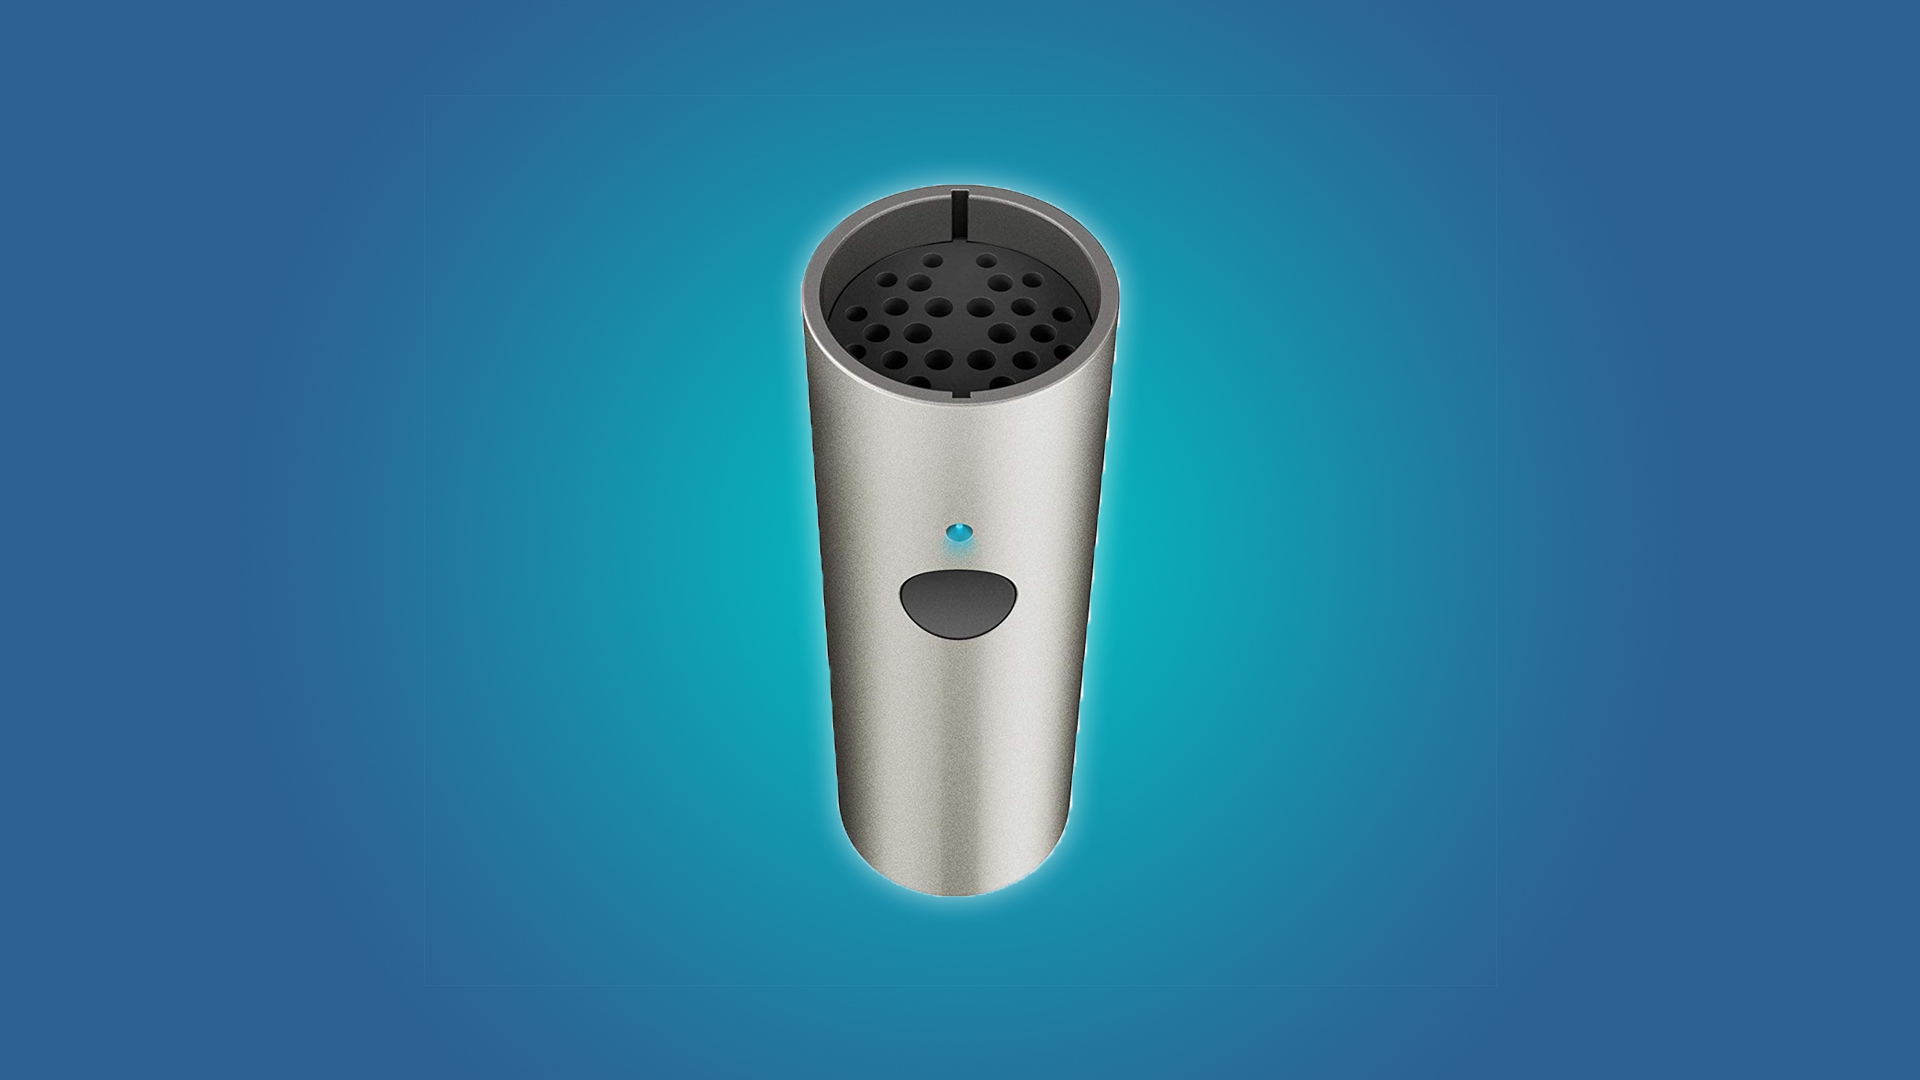 Atmotube 2.0 Air Quality Monitor